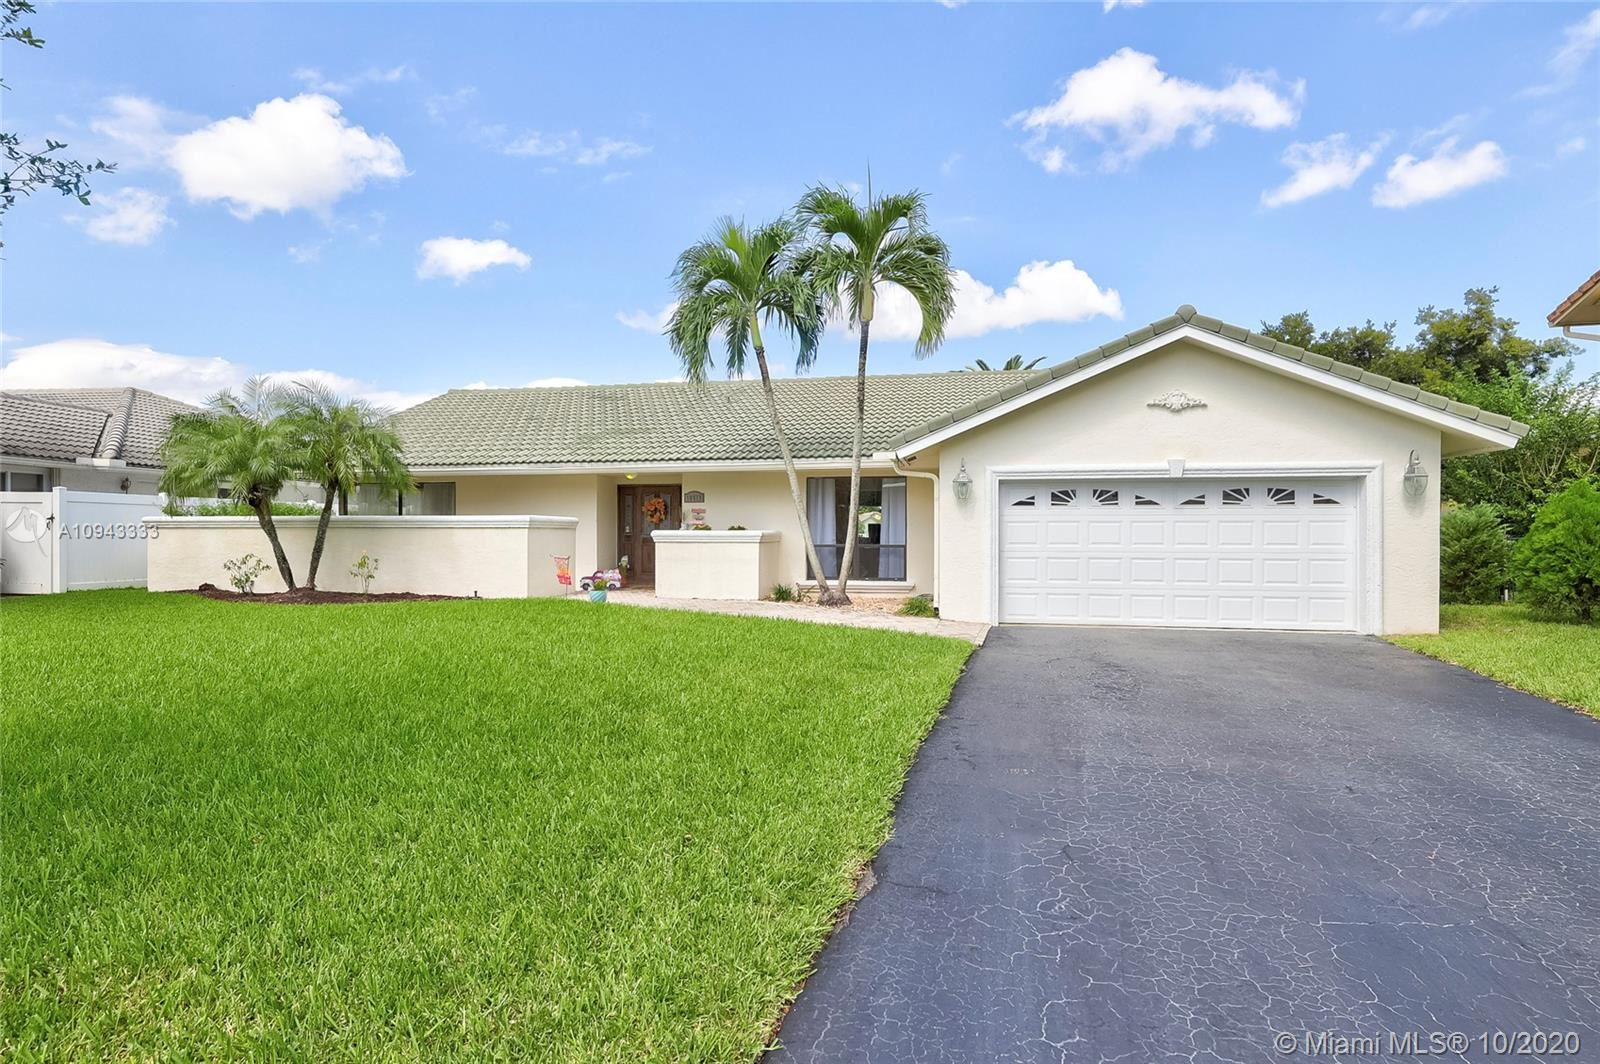 10919 NW 17th Pl, Coral Springs, FL 33071 - #: A10943333